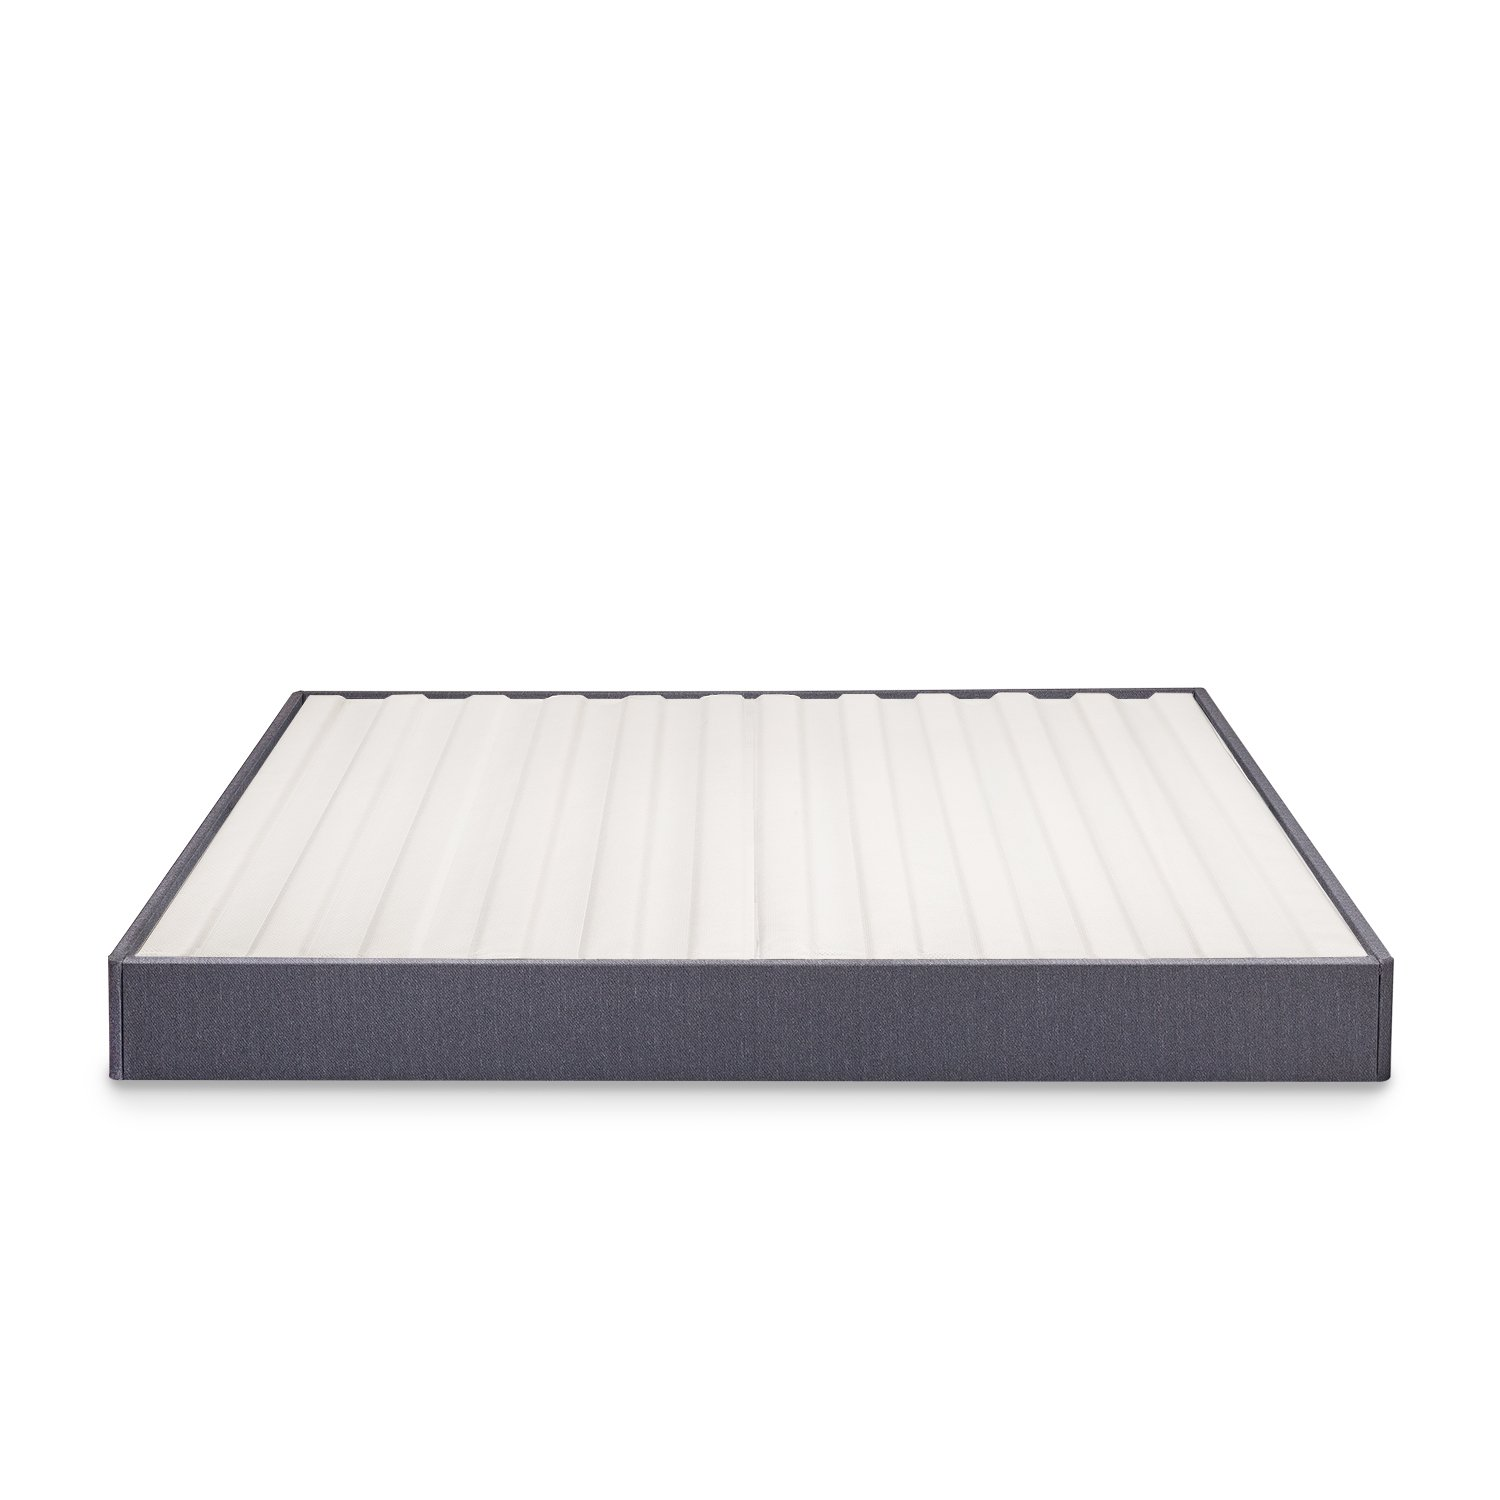 Zinus 7.5 Inch Essential Box Spring/Mattress Foundation/Easy Assembly Required, Twin by Zinus (Image #1)